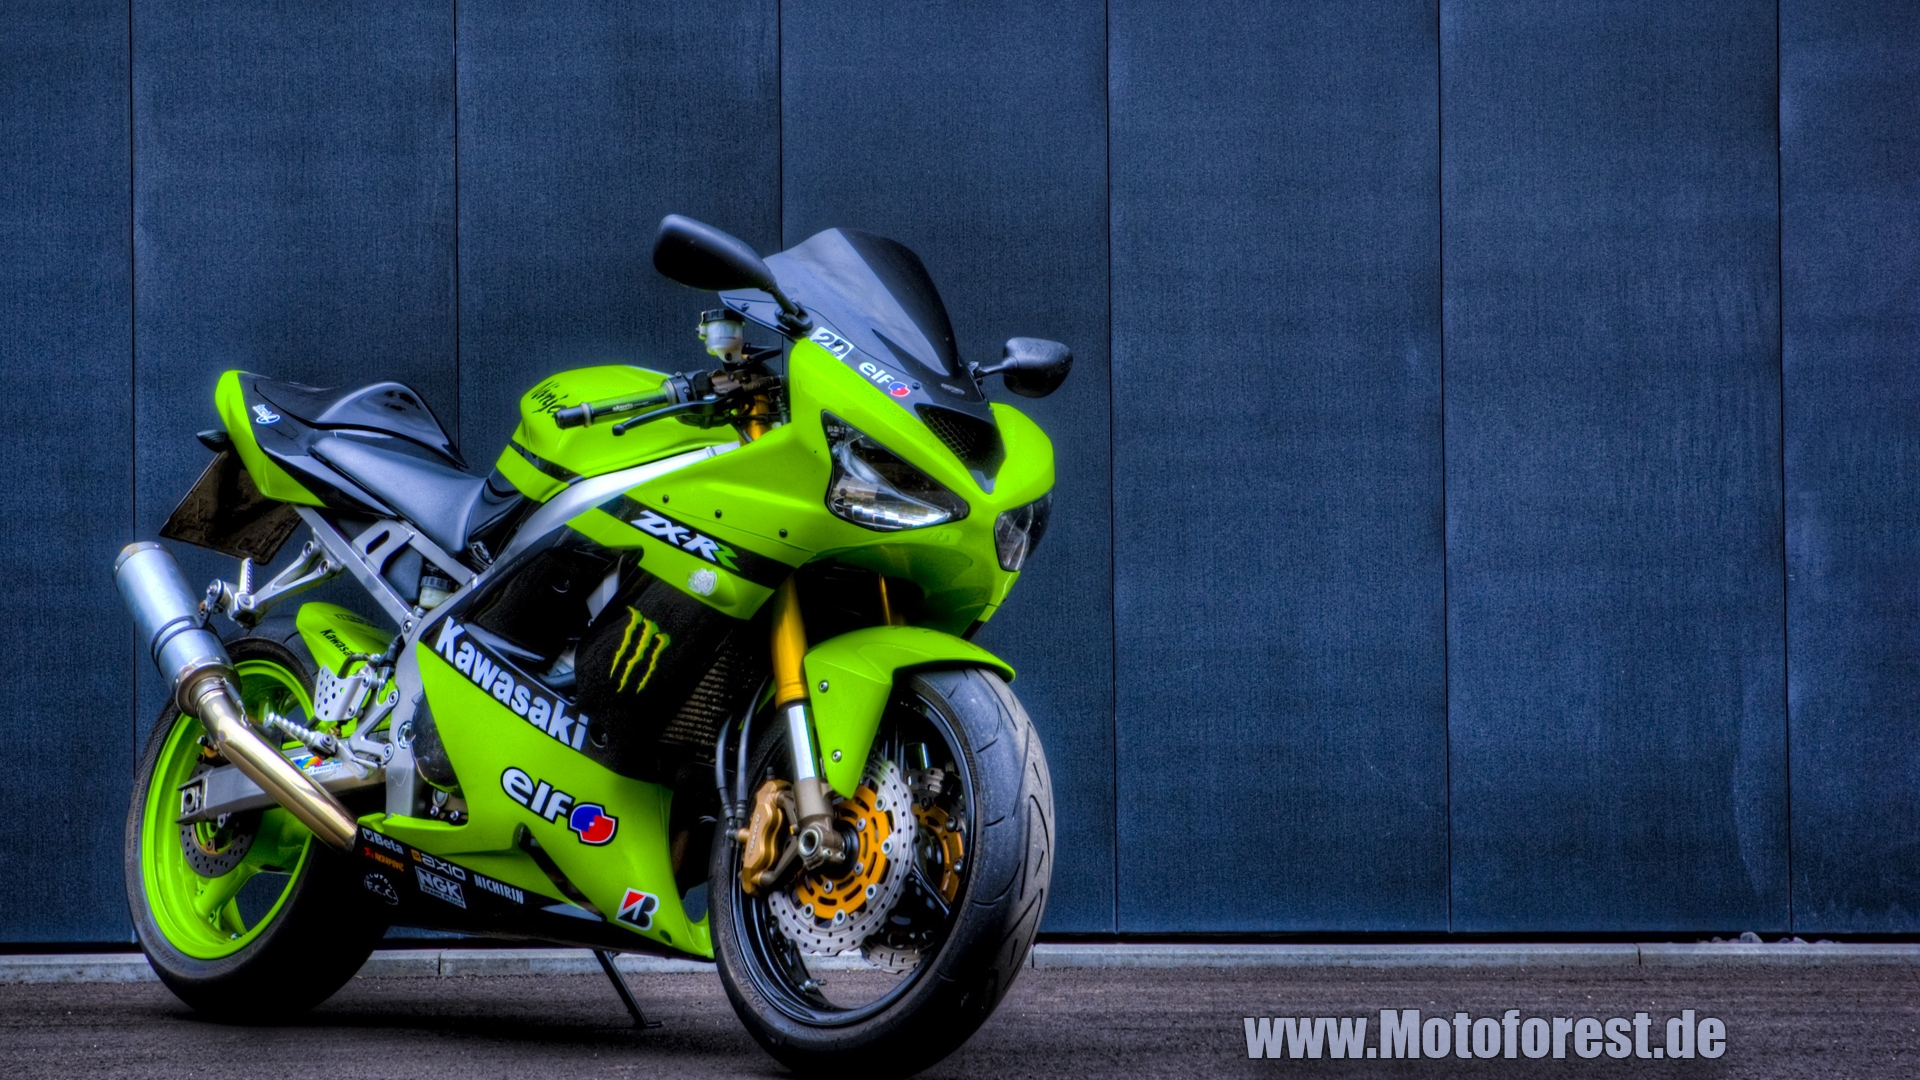 download Kawasaki ZX6R Wallpaper Hintergrundbild HDR 1920x1080